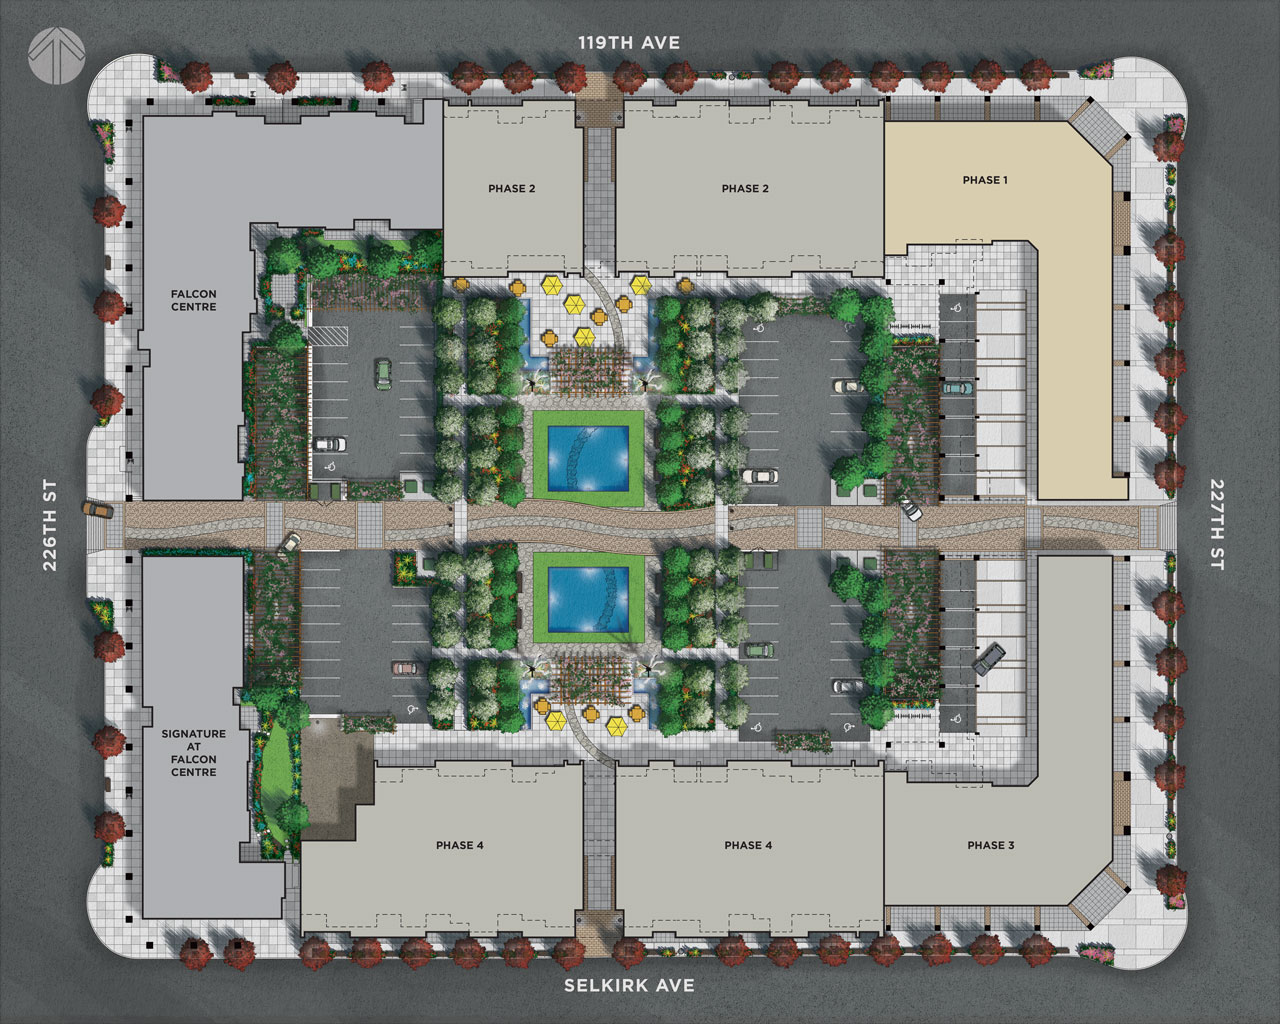 The site plan image for Brickwater Village in Maple Ridge, BC, Canada